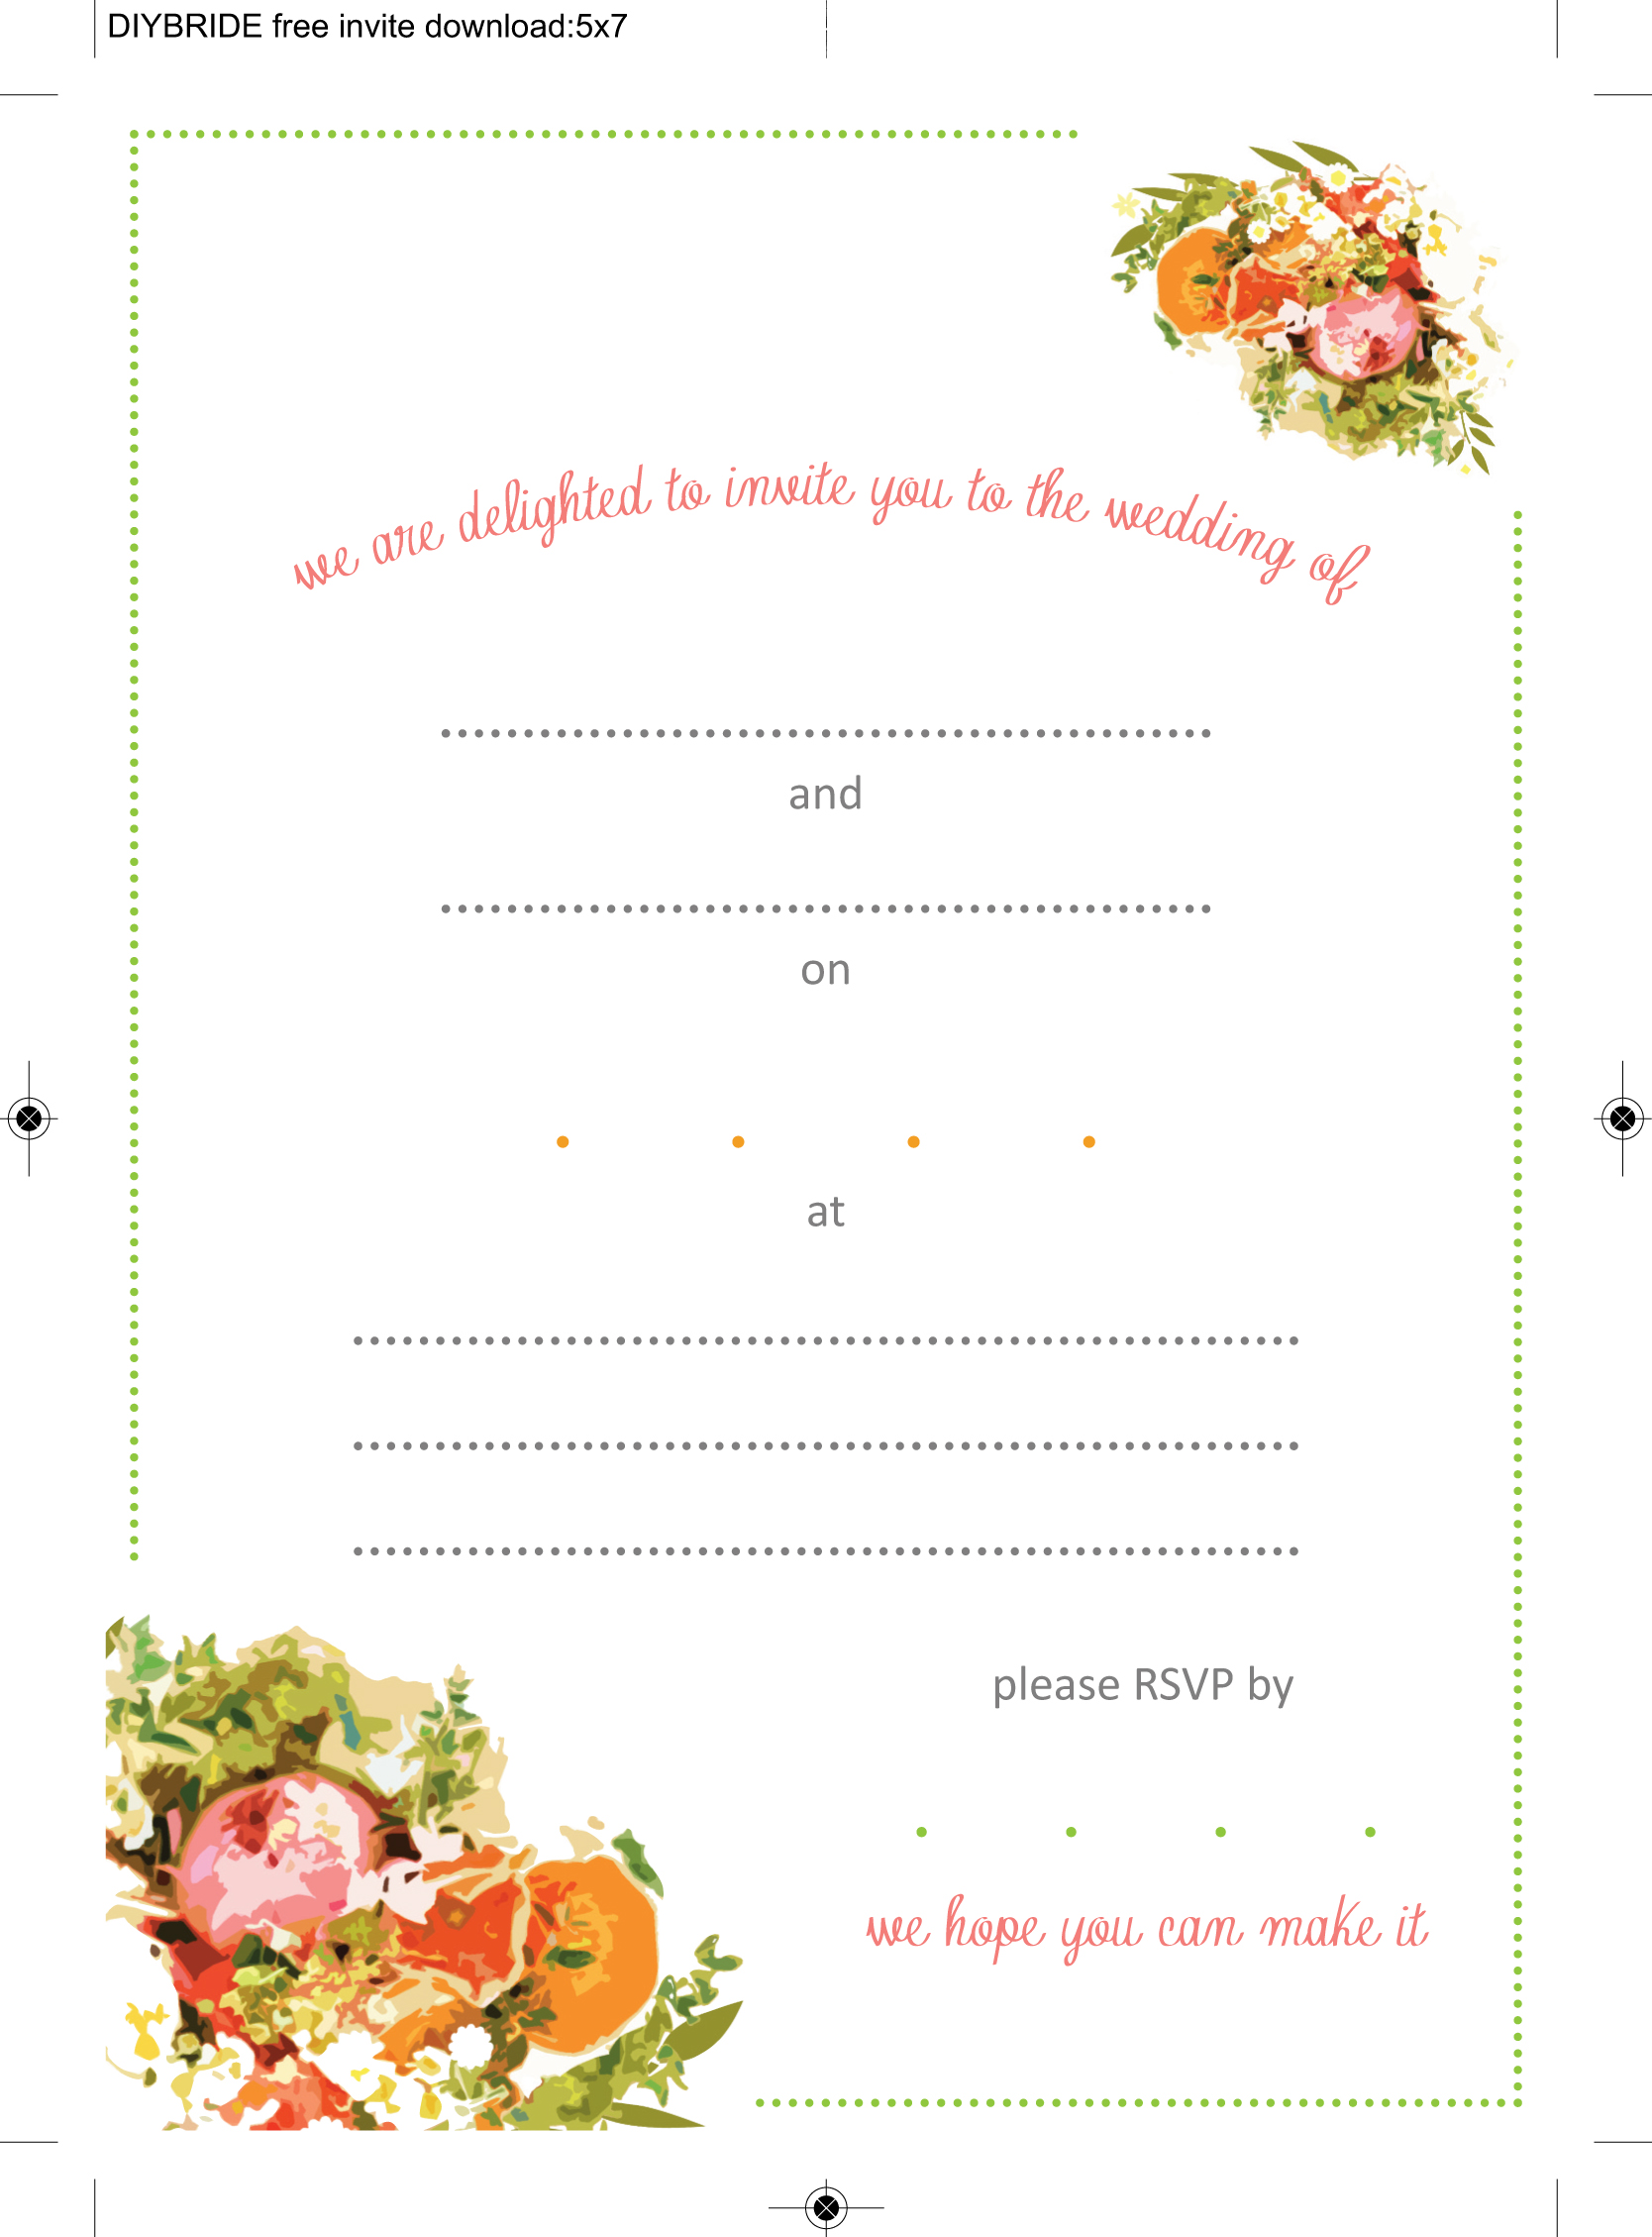 Wedding Invitation Templates That Are Cute And Easy To Make The - Wedding invitation templates: free printable wedding templates for invitations